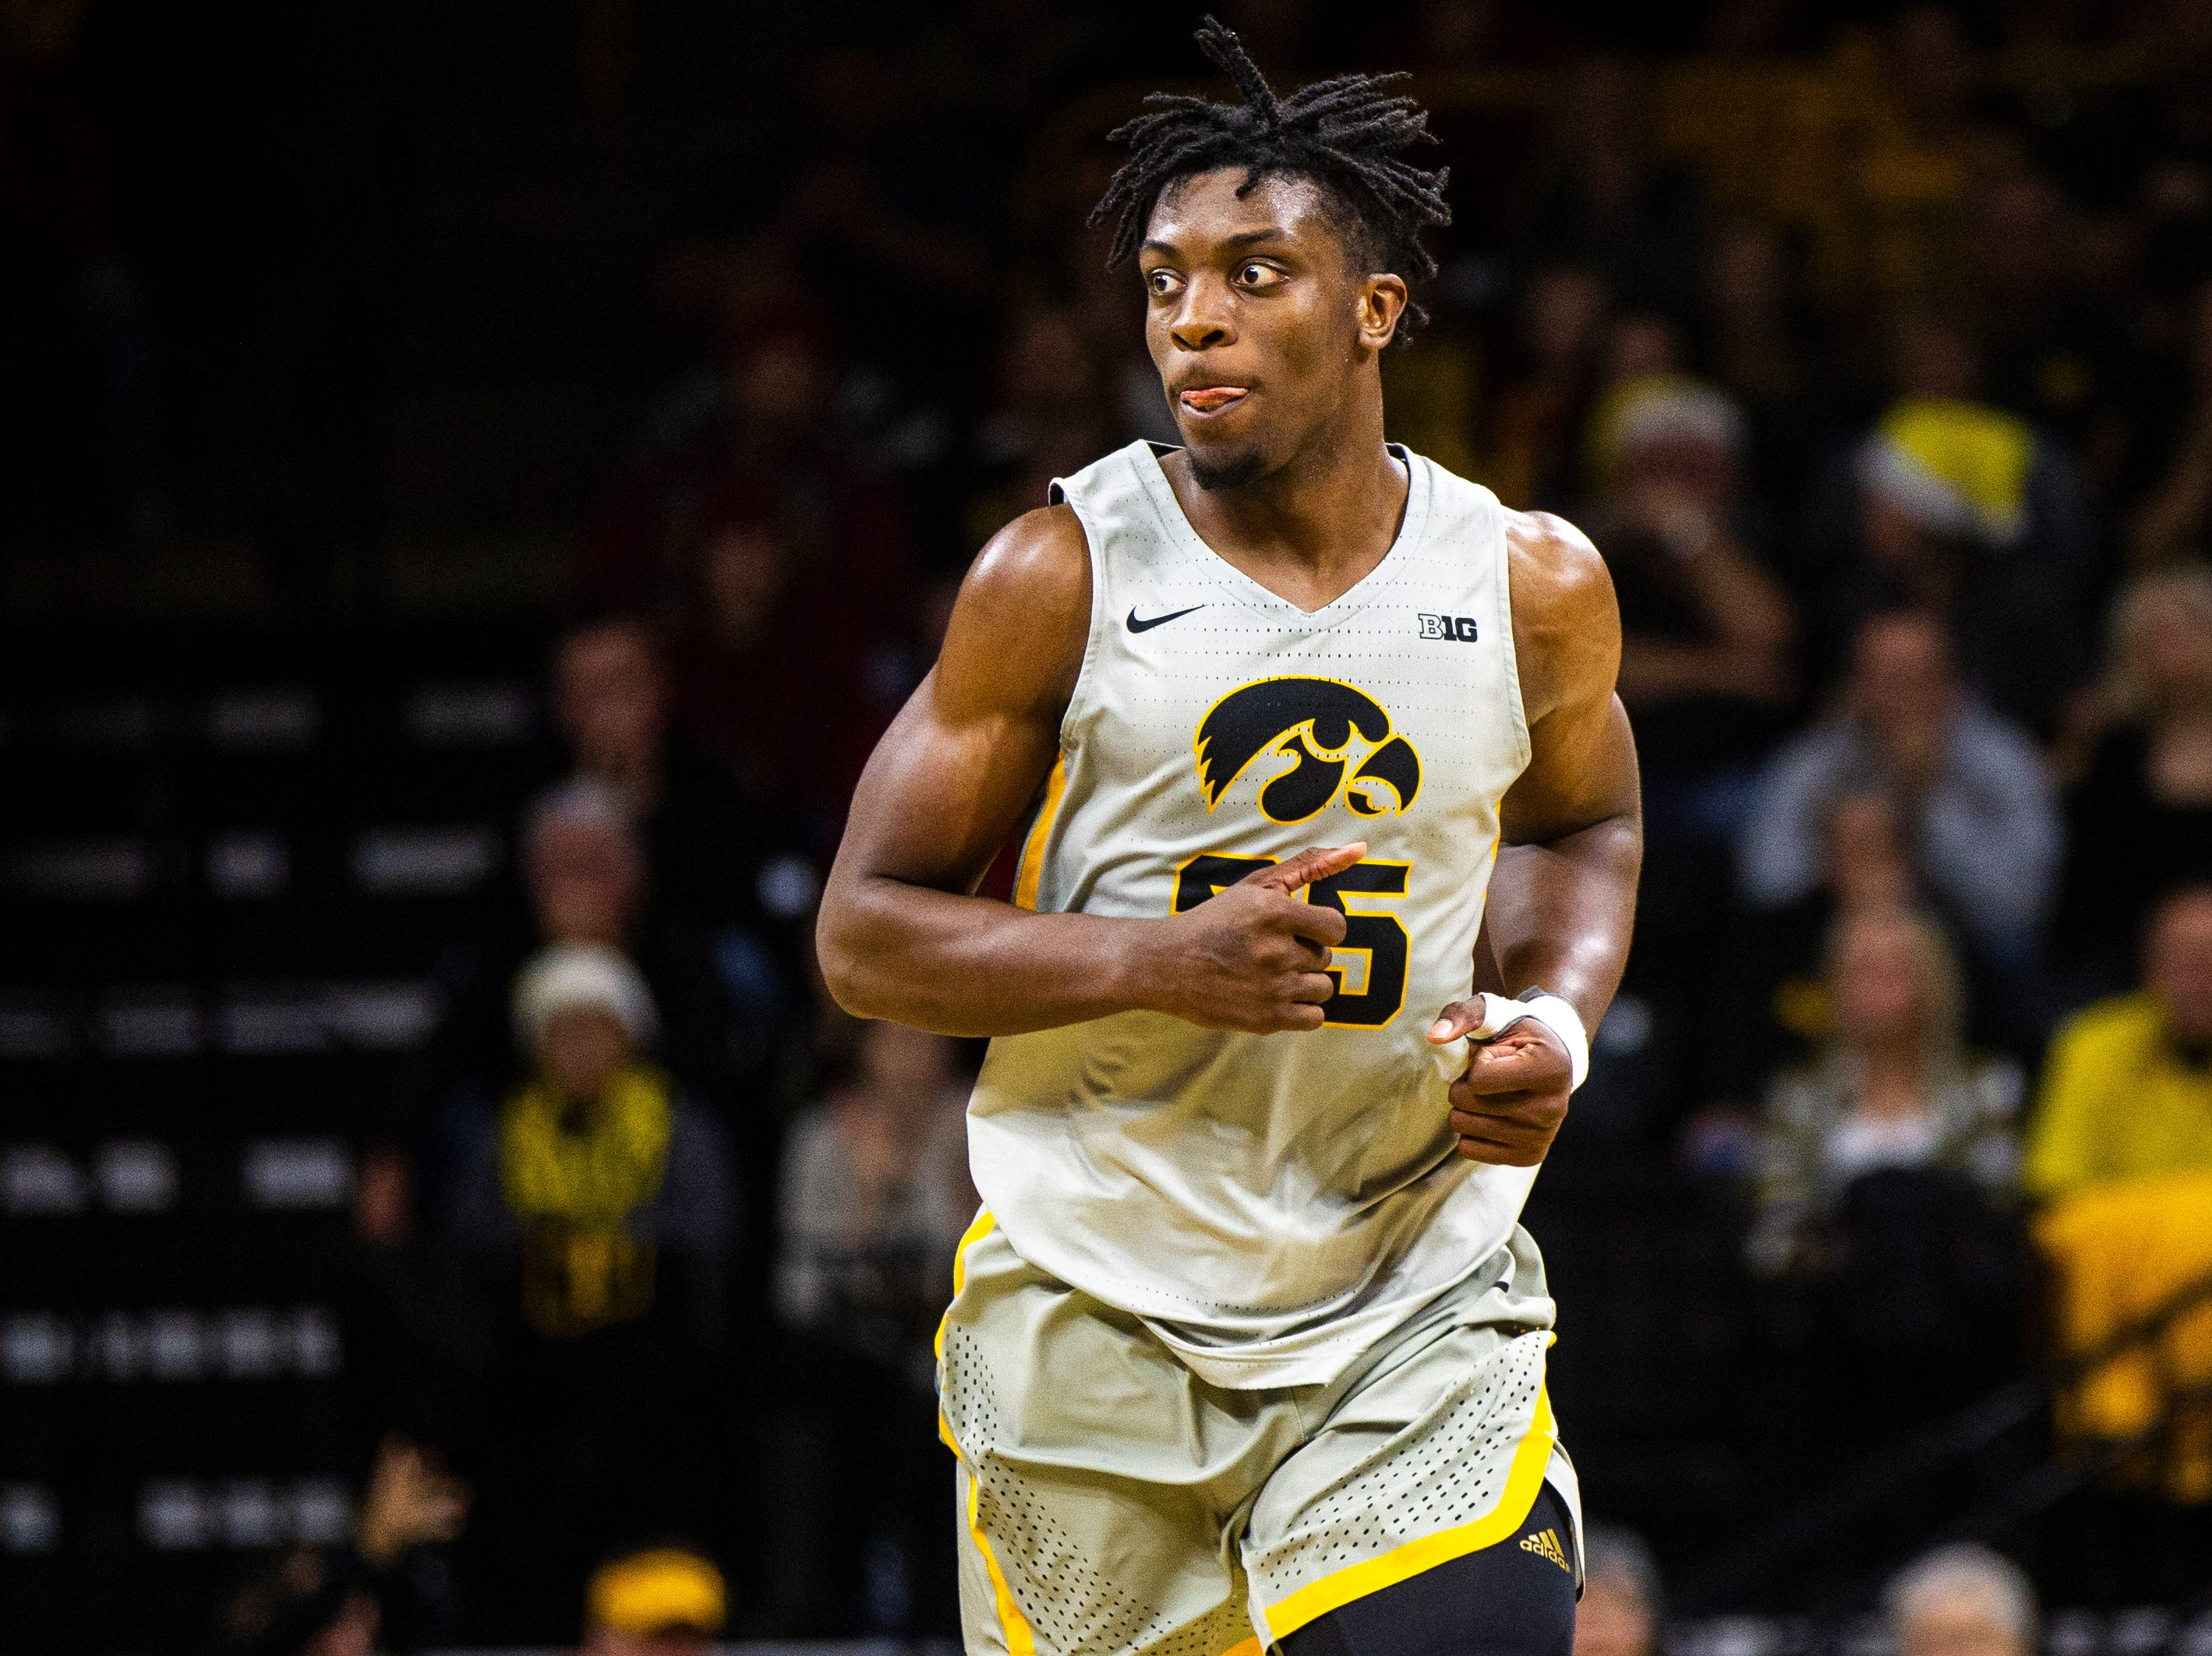 Iowa forward Tyler Cook (25) runs up the court after scoring during a NCAA Cy-Hawk series men's basketball game on Thursday, Dec. 6, 2018, at Carver-Hawkeye Arena in Iowa City.